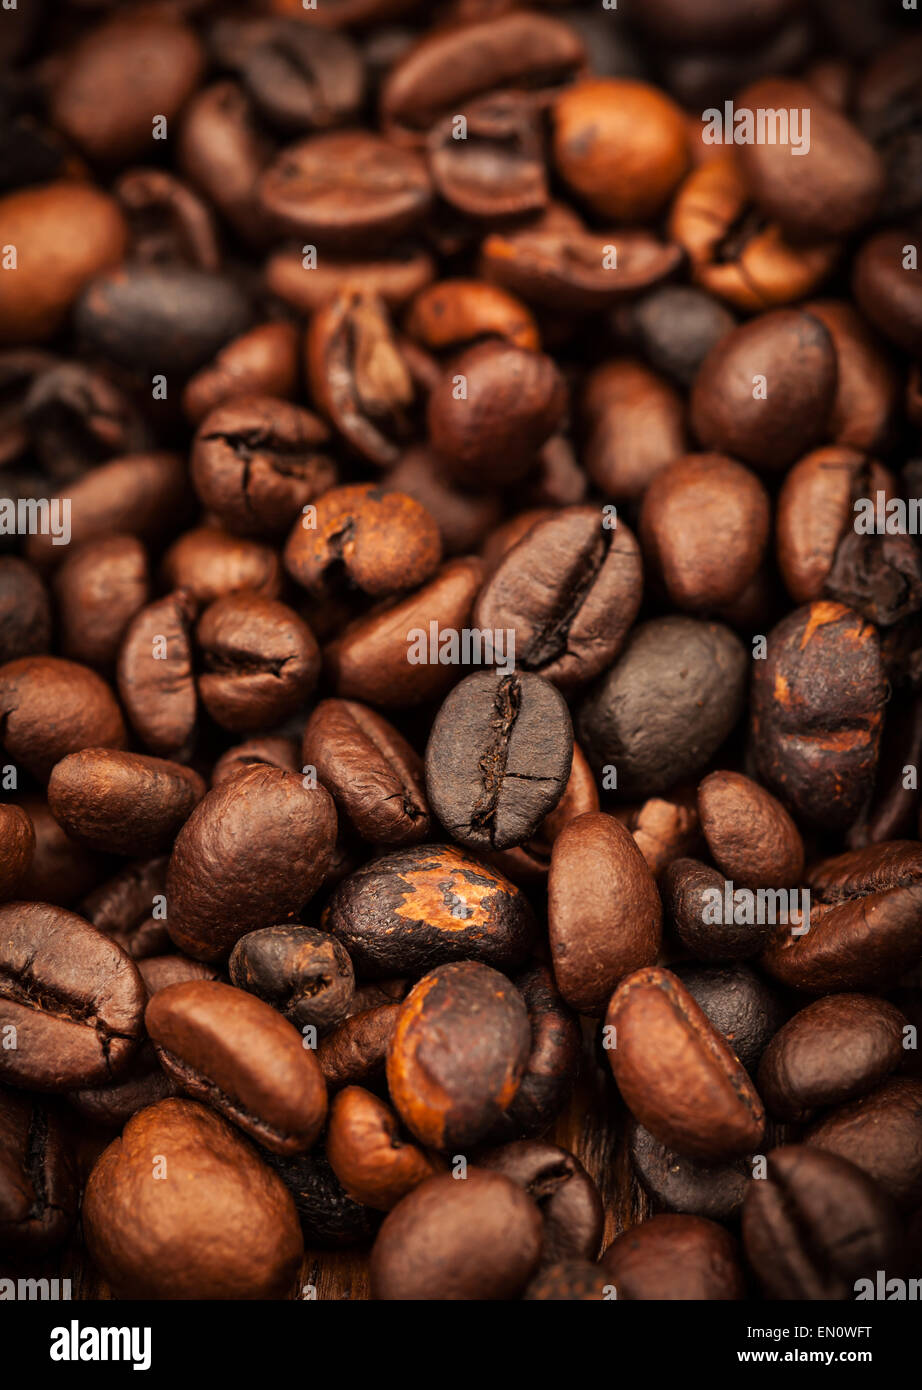 Roasted coffee beans as background - Stock Image